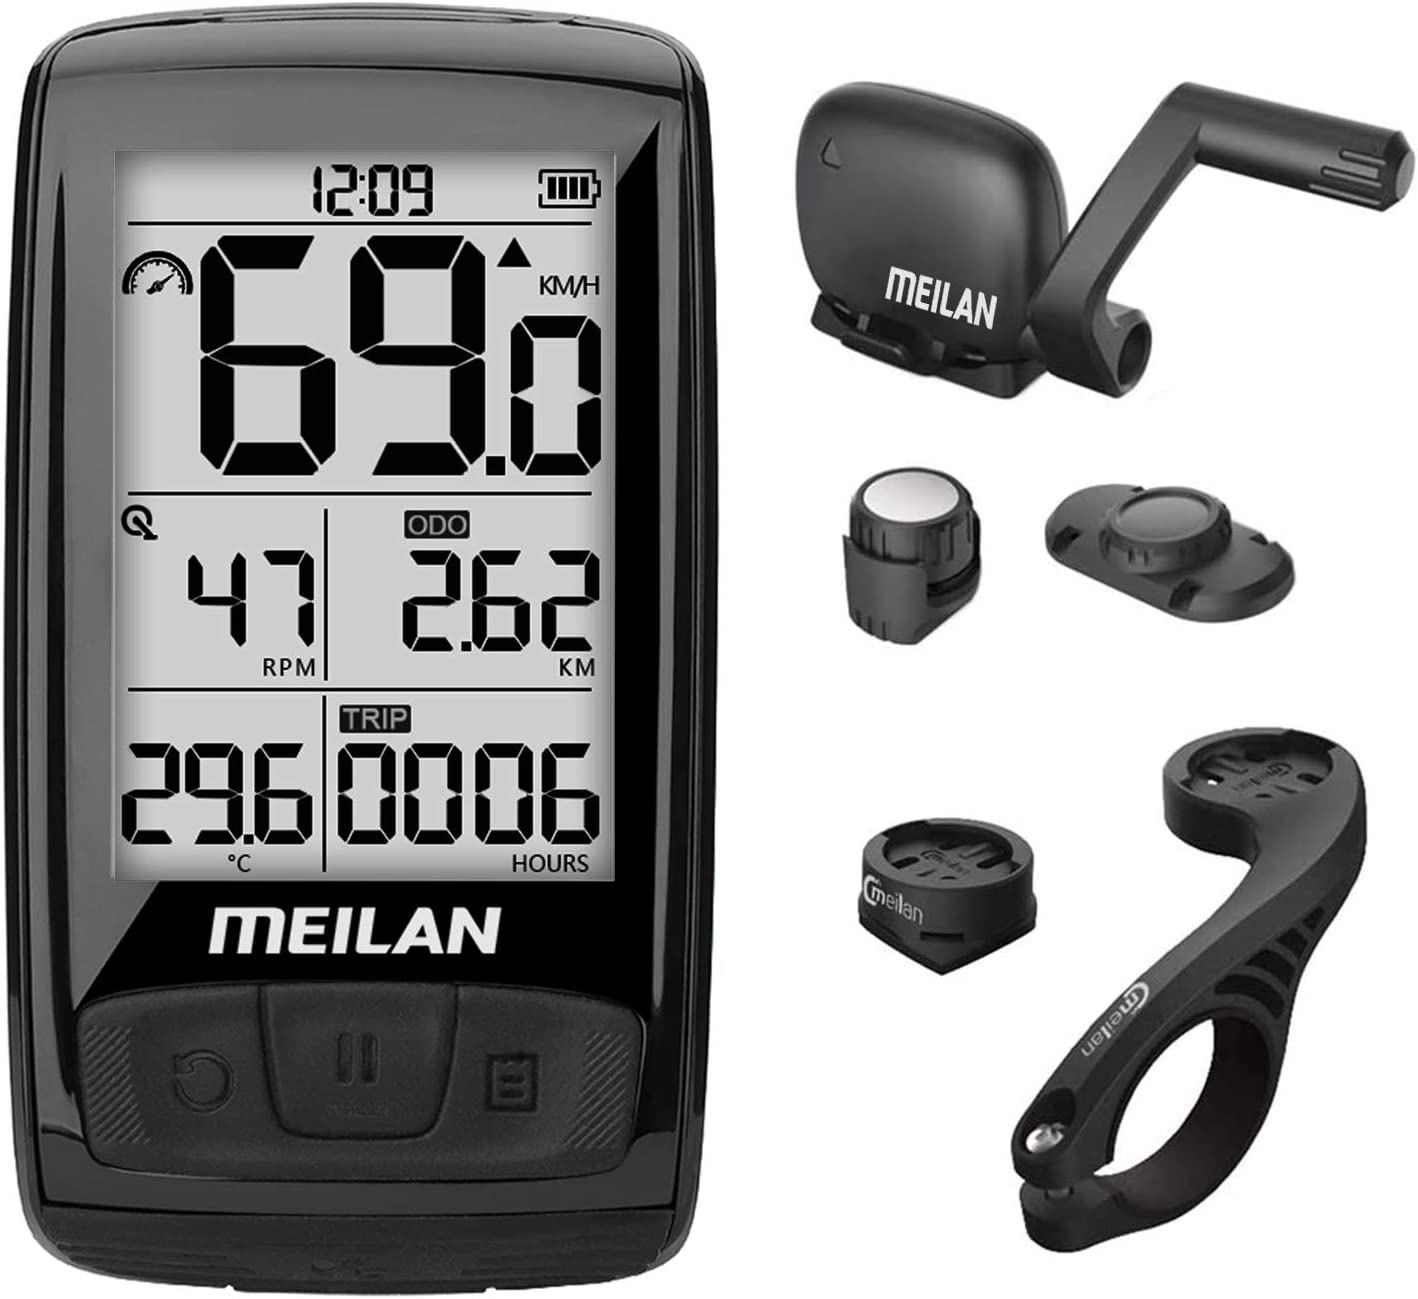 MEILAN M4 Wireless Bike Computer, IPX5 Waterproof Cycling Computer with 2.5 Inch Backlight LCD, ANT+ BLE4.0 Bicycle Computer Bicycle Speedometer and Odometer with Cadence/Speed Sensor : Sports & Outdoors